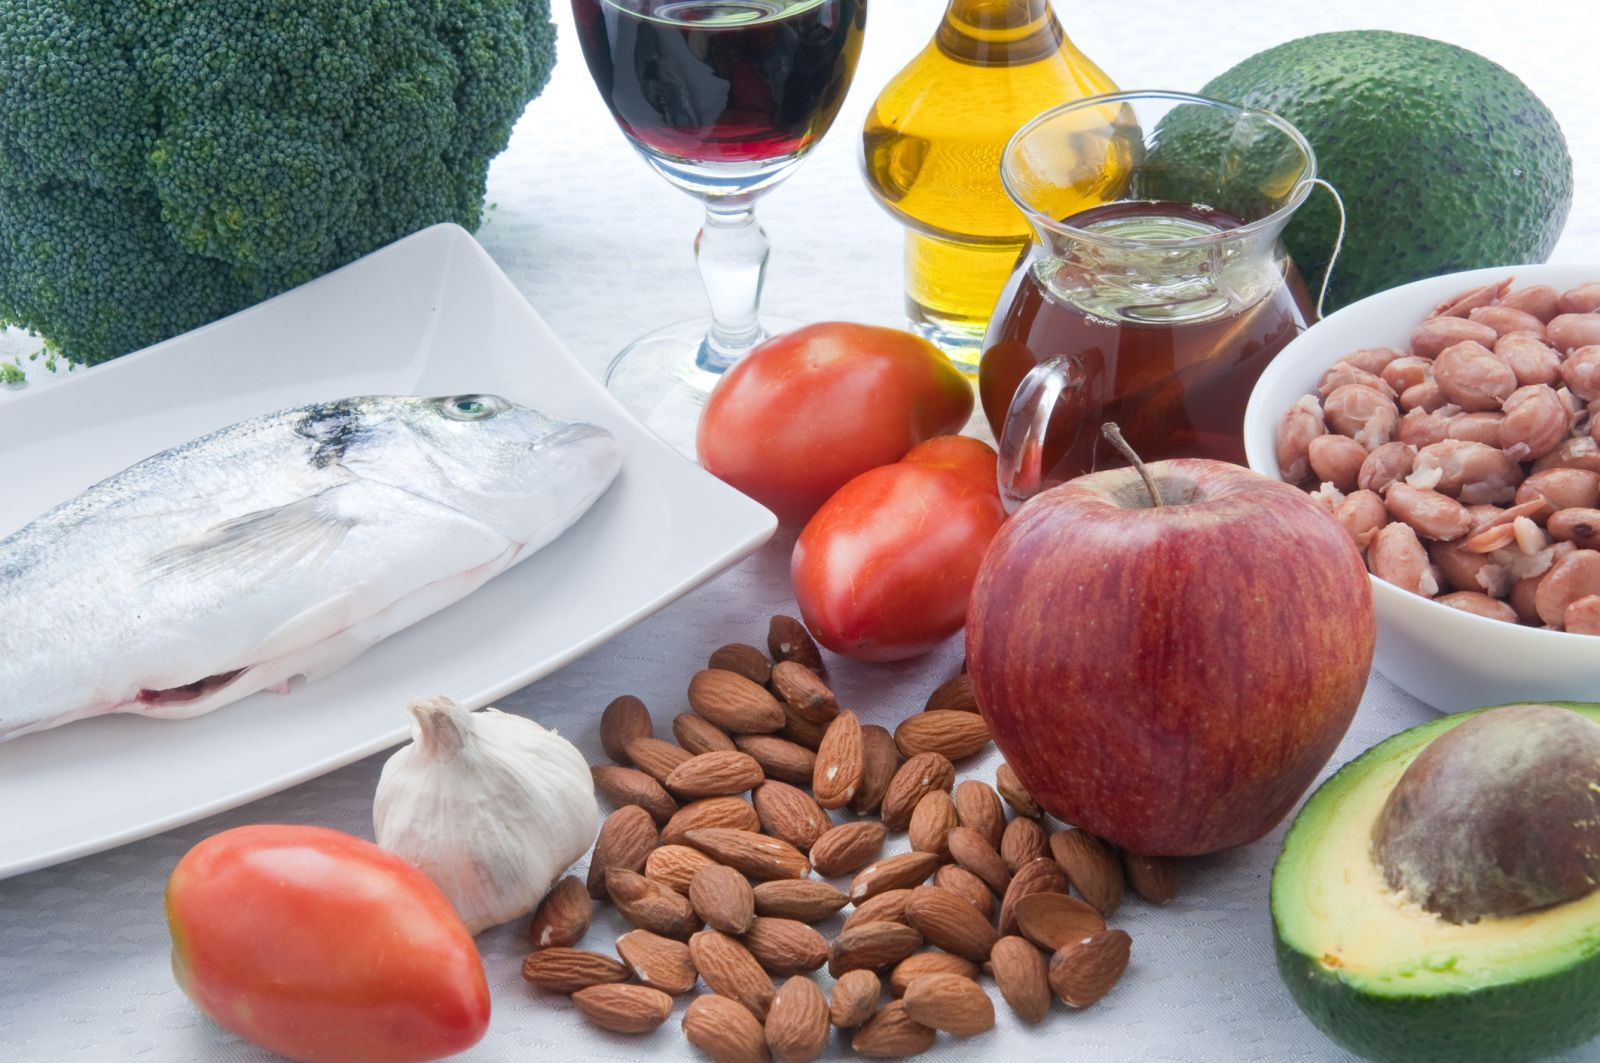 Healthy food items to lower cholesterol levels